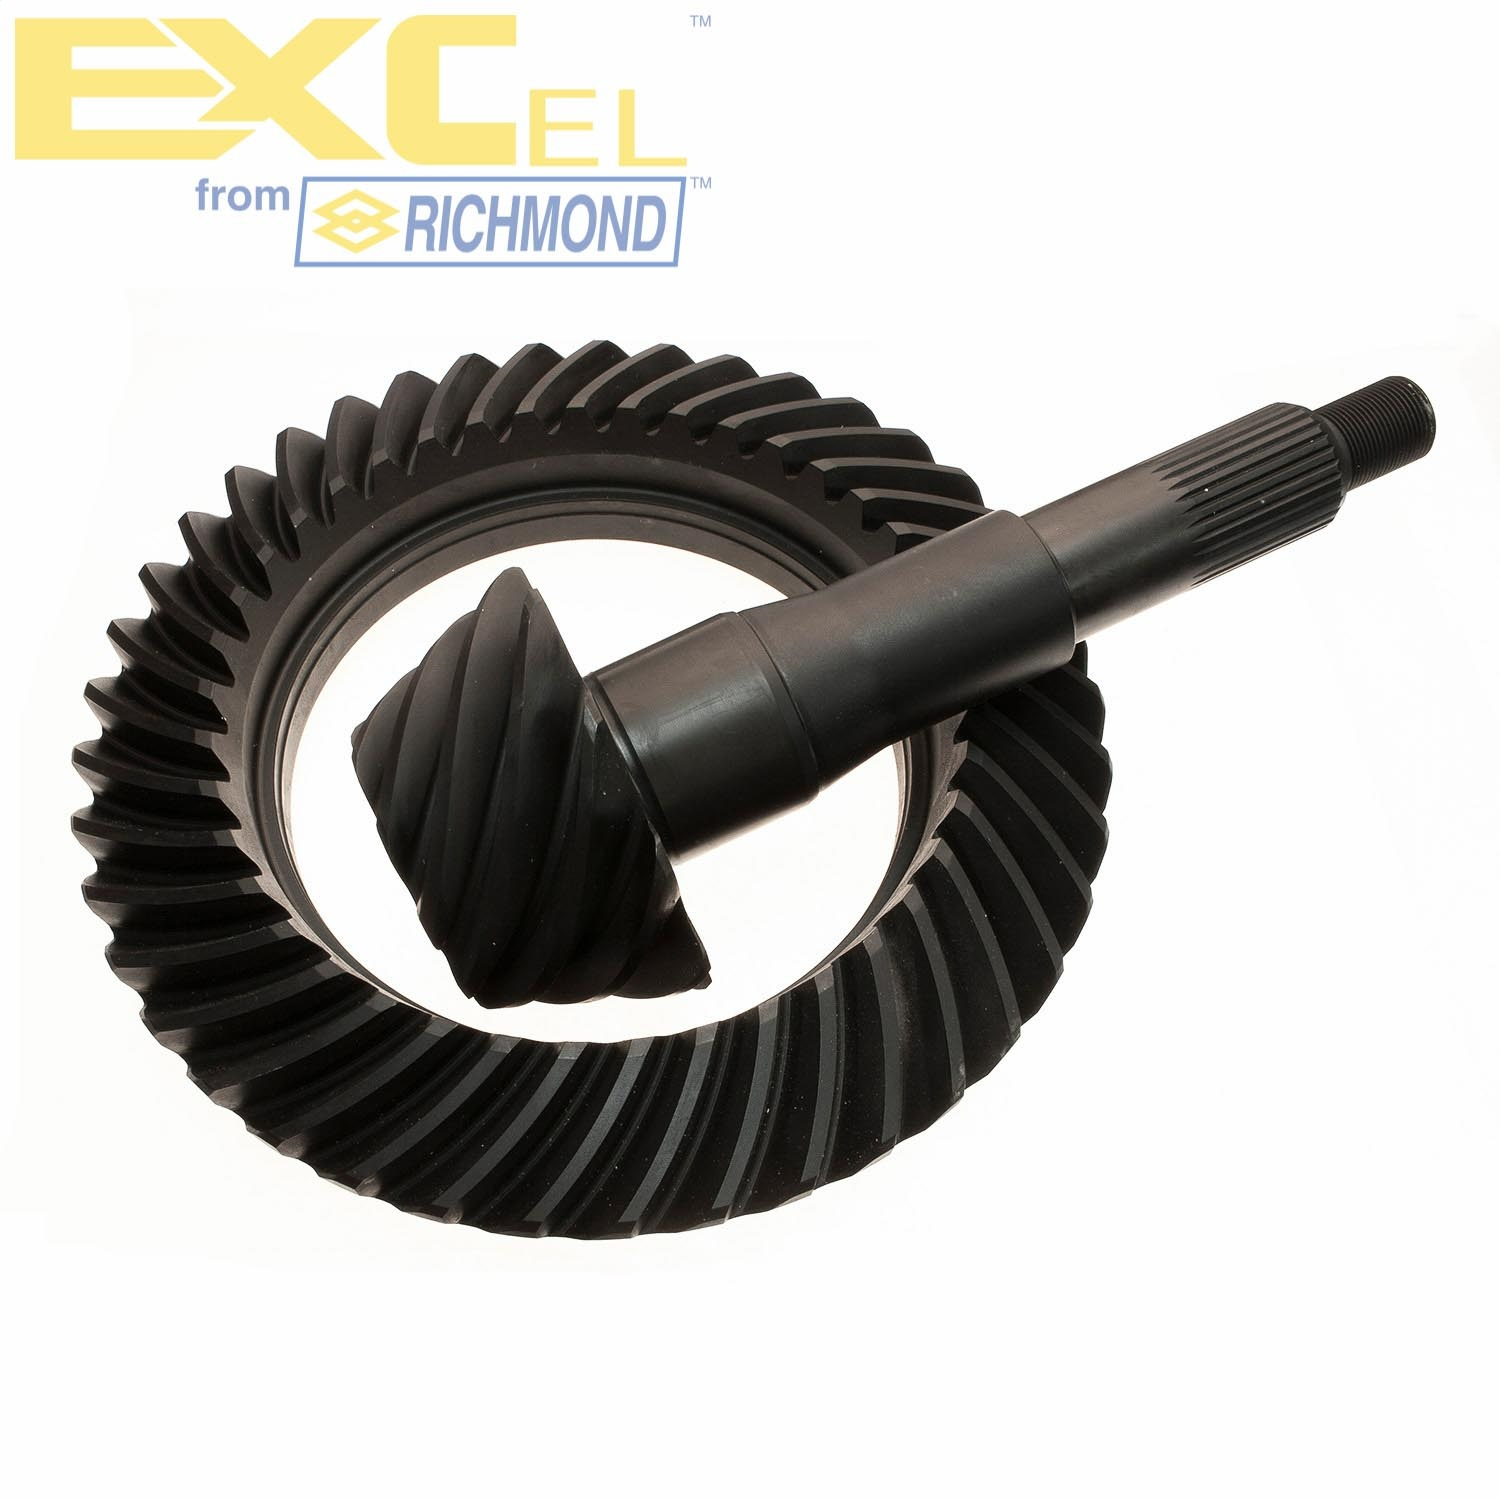 EXCEL from Richmond F10456L Differential Ring And Pinion